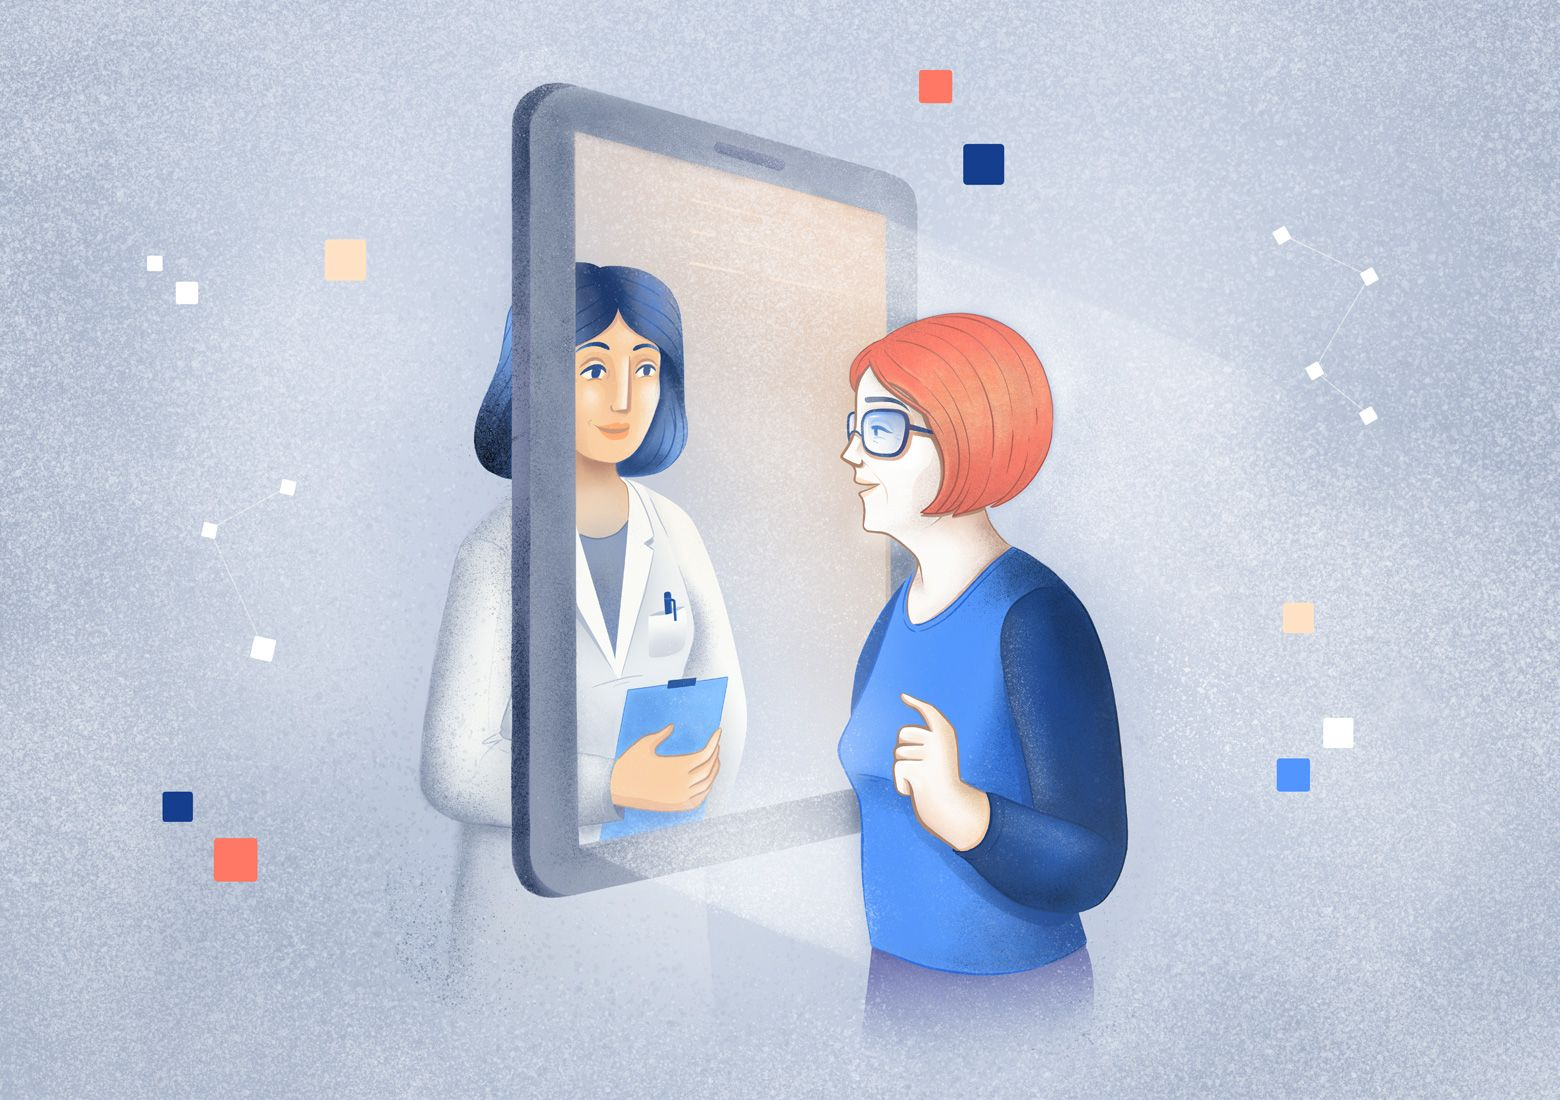 Digital front door is a strategy designed to engage patients at specific touchpoints of their health journey.